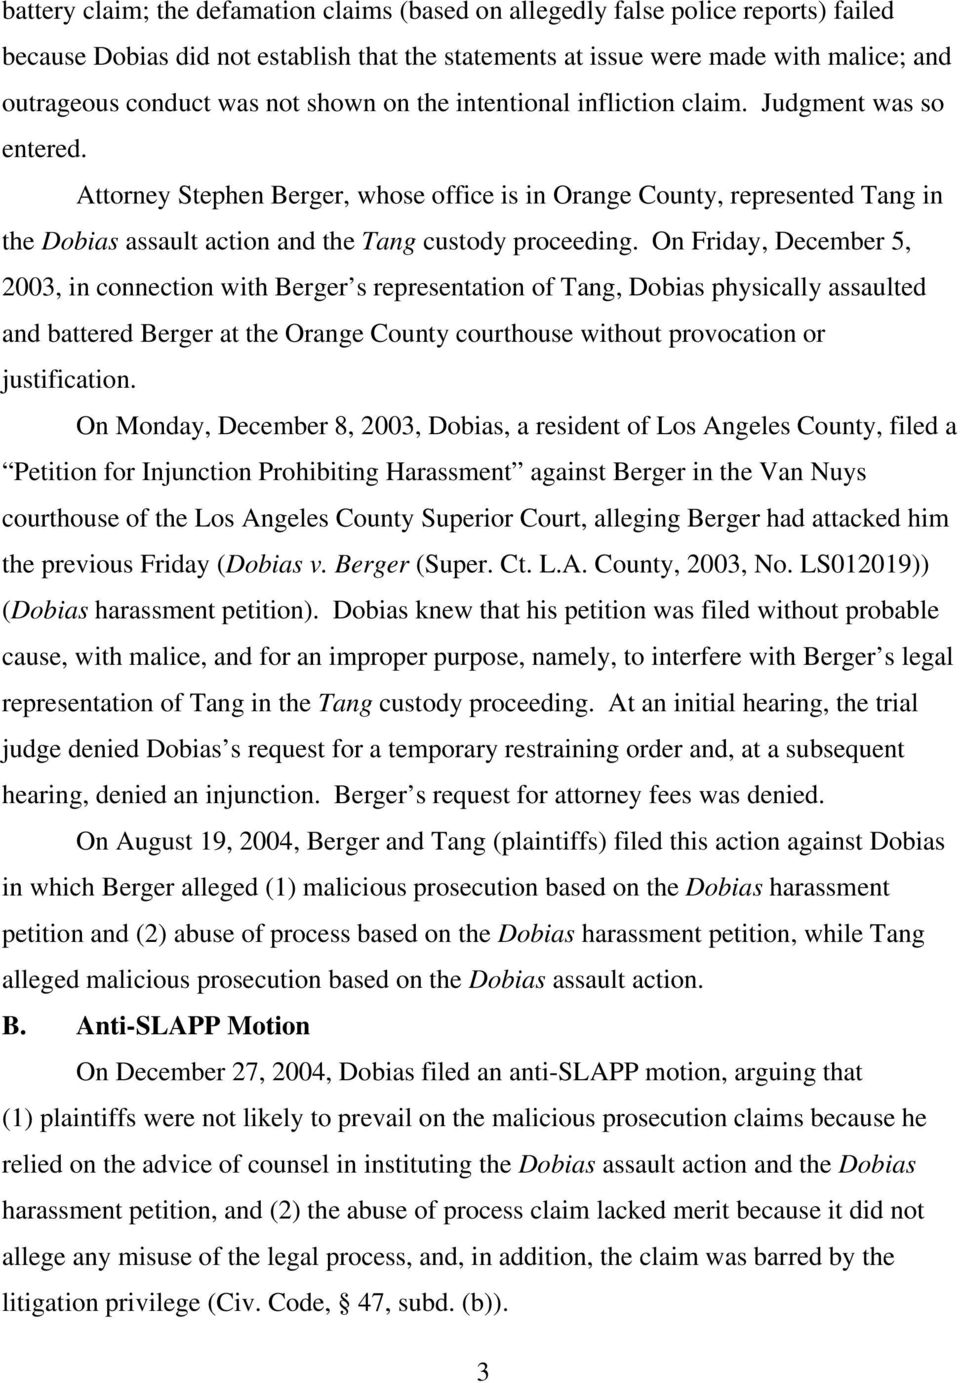 Attorney Stephen Berger, whose office is in Orange County, represented Tang in the Dobias assault action and the Tang custody proceeding.